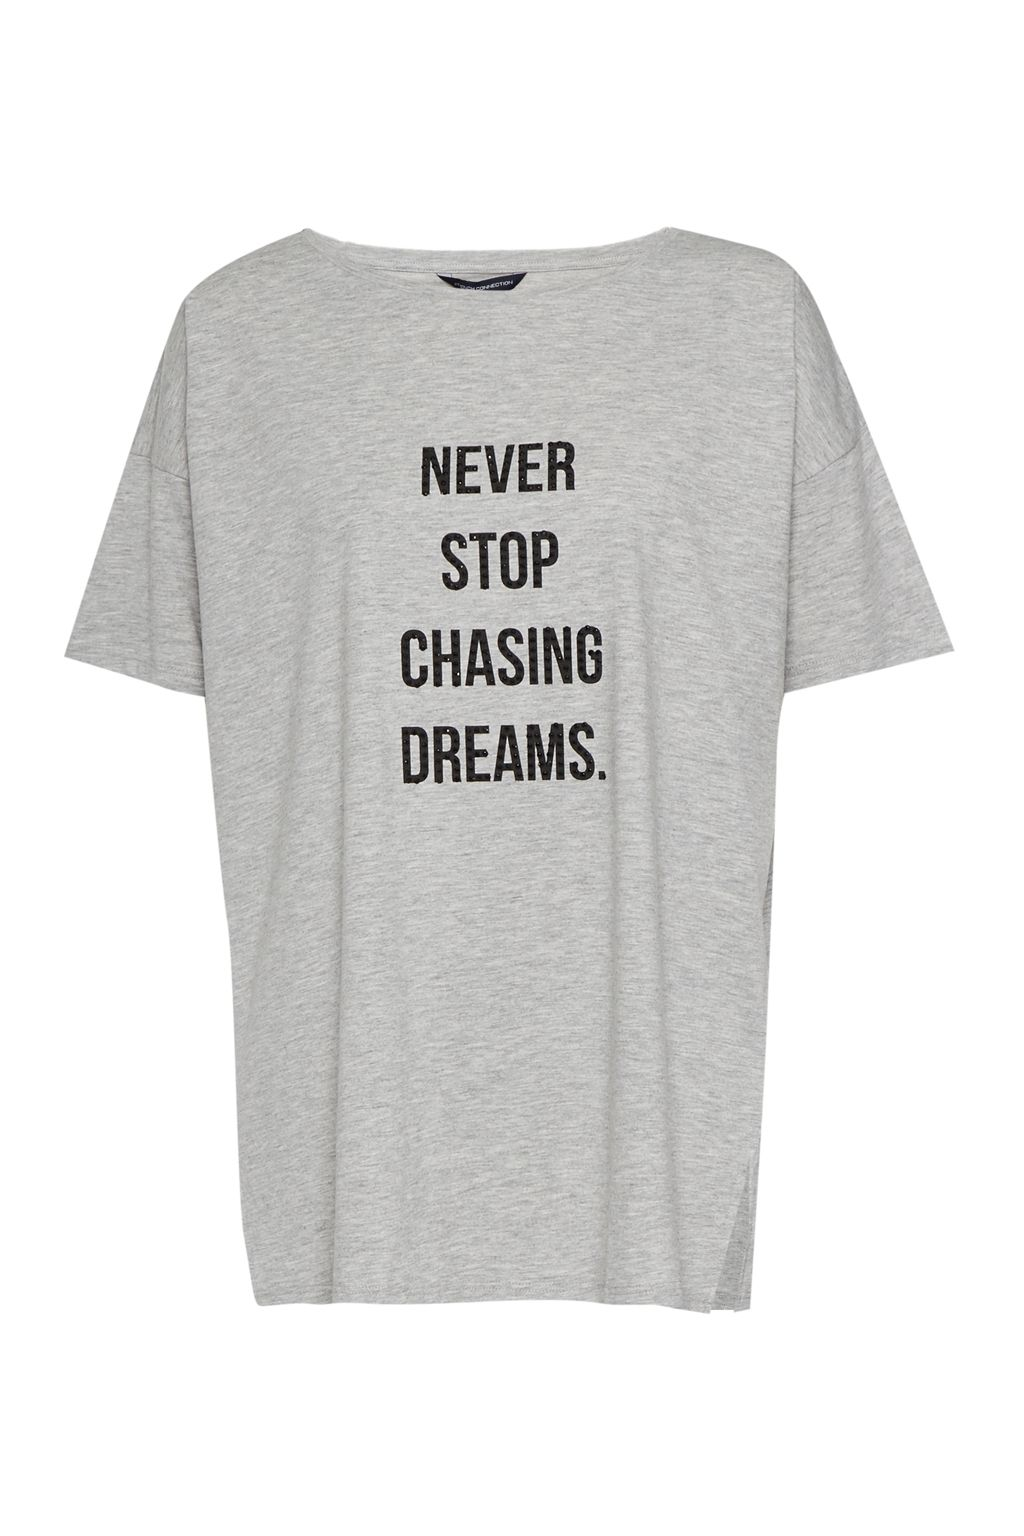 French Connection Never Stop Chasing Dreams T-Shirt, Grey